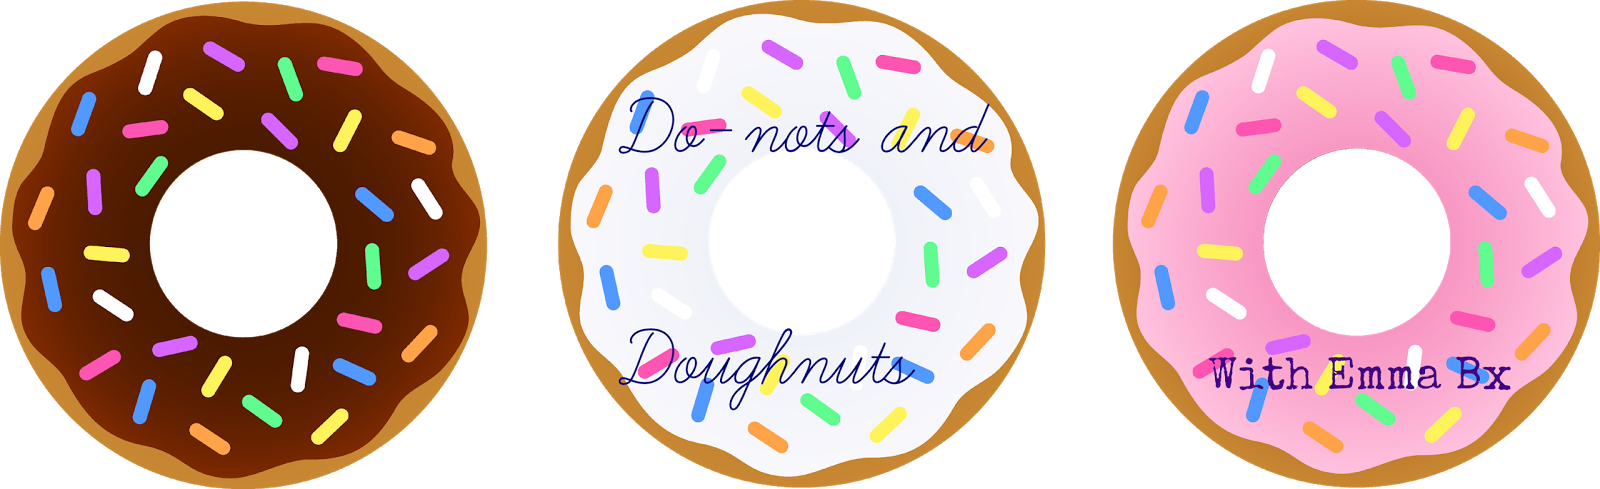 Do not s and. Donut clipart design